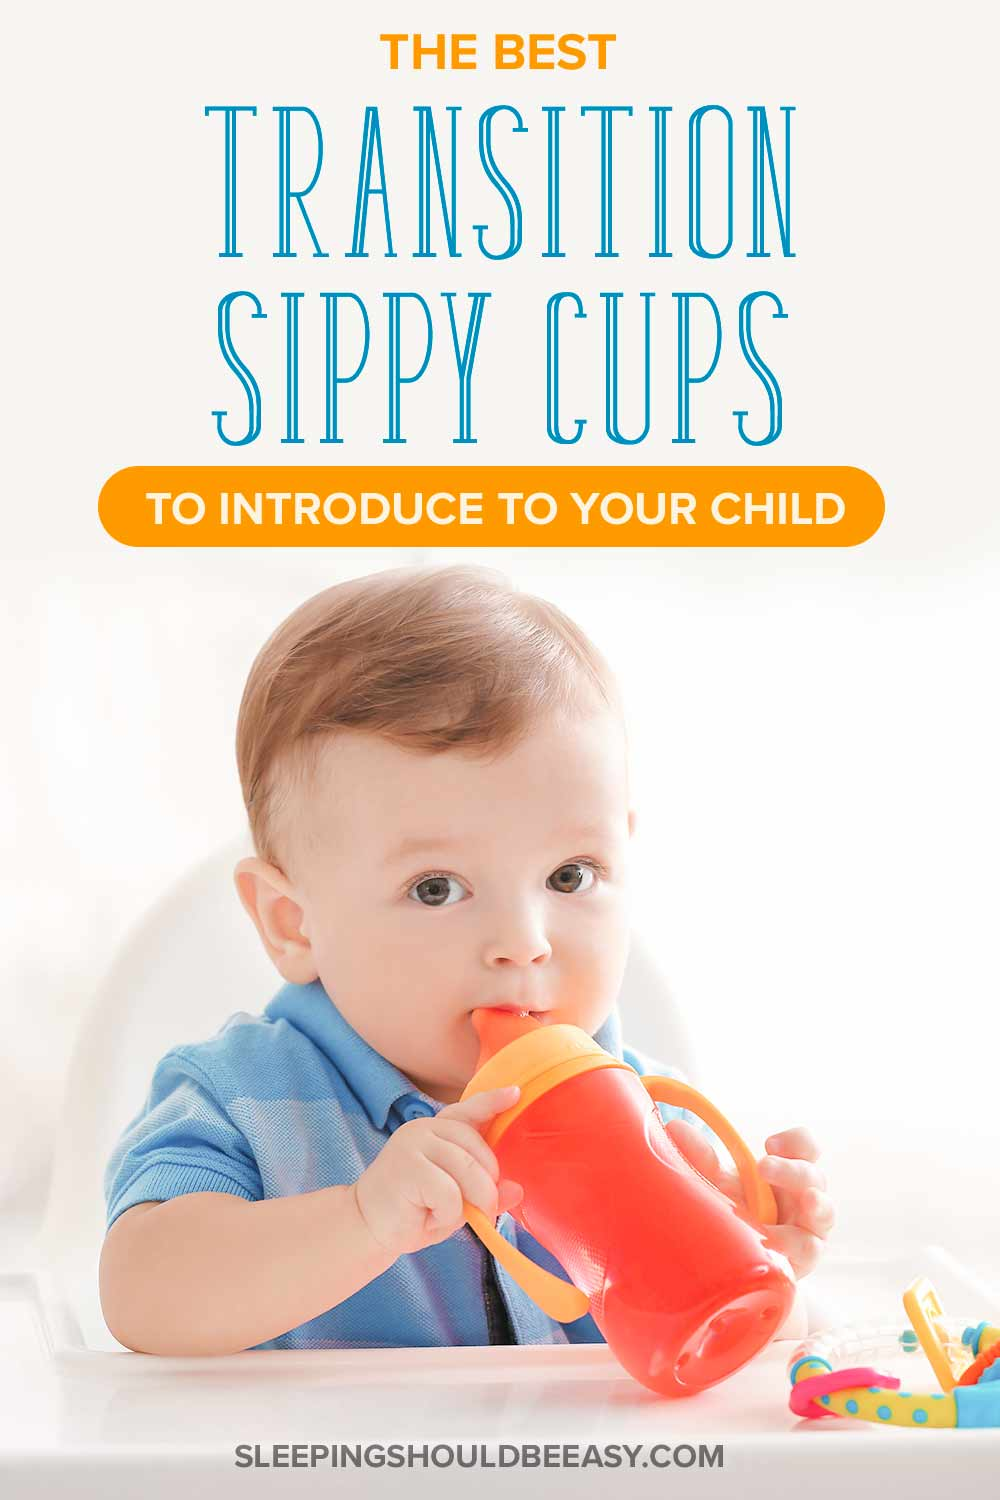 A little boy drinking from a sippy cup: The best transition sippy cups to introduce to your child